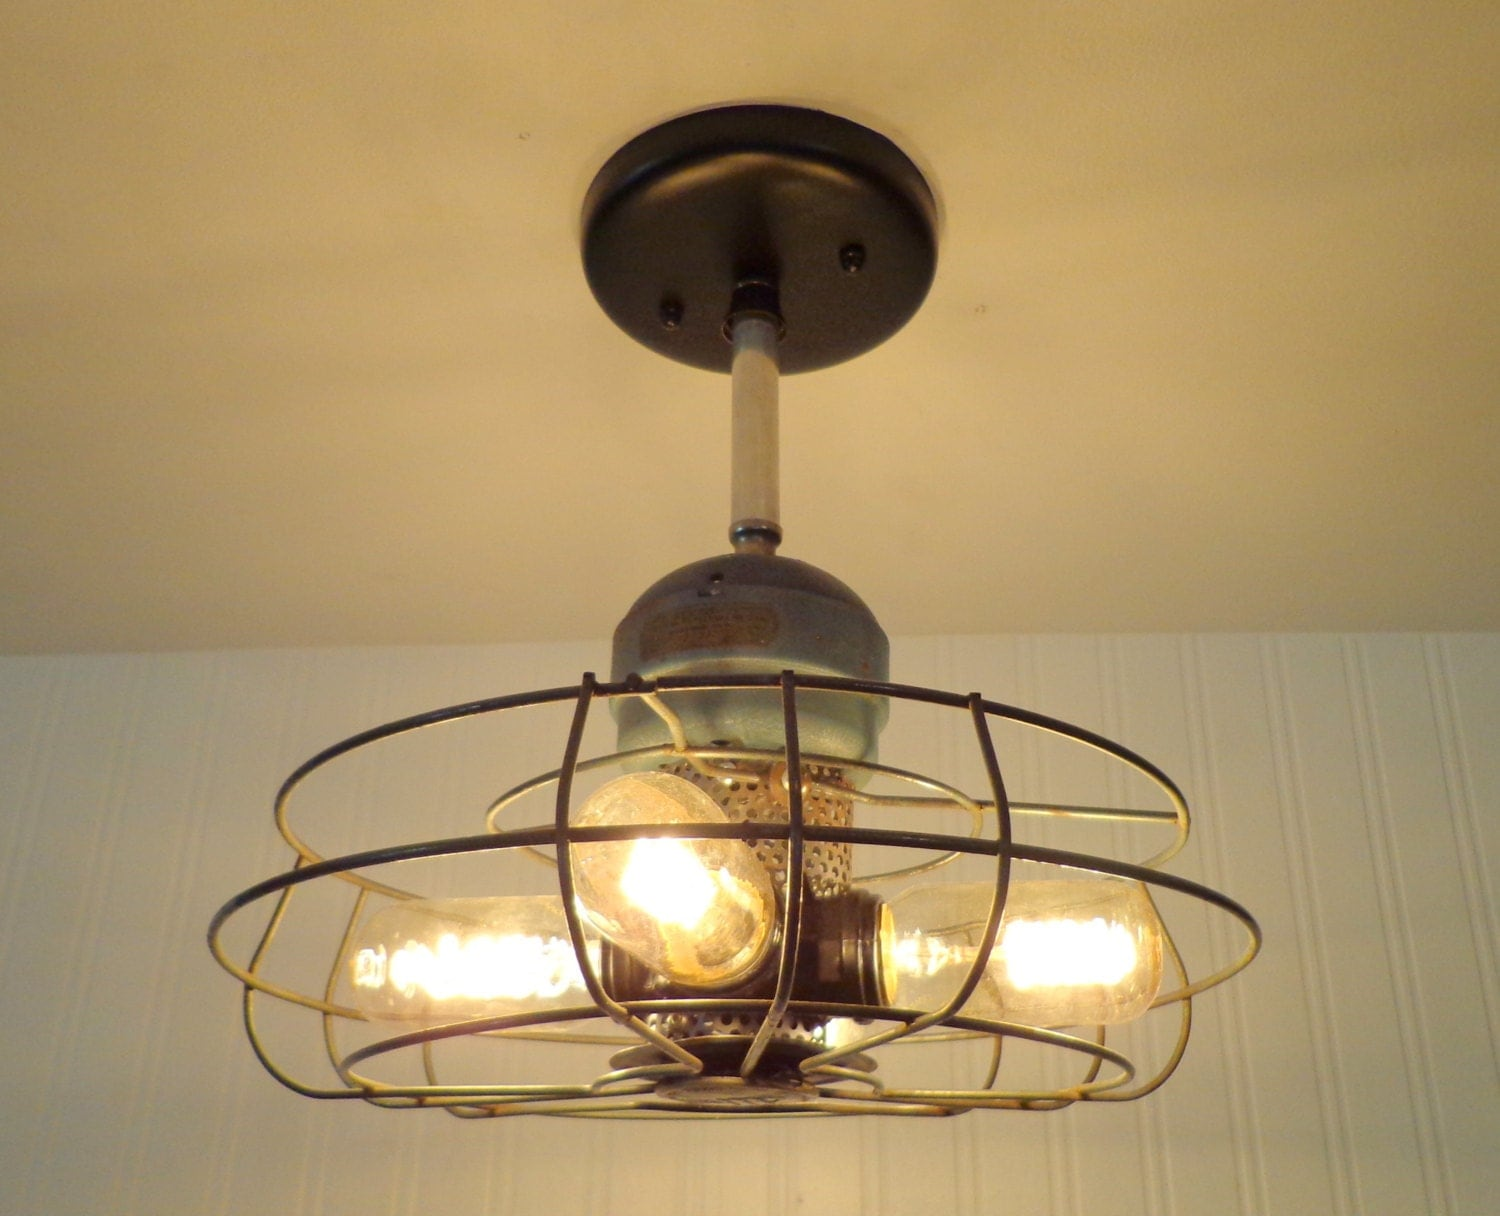 mimar vintage fan cage ceiling light shown with by lampgoods. Black Bedroom Furniture Sets. Home Design Ideas